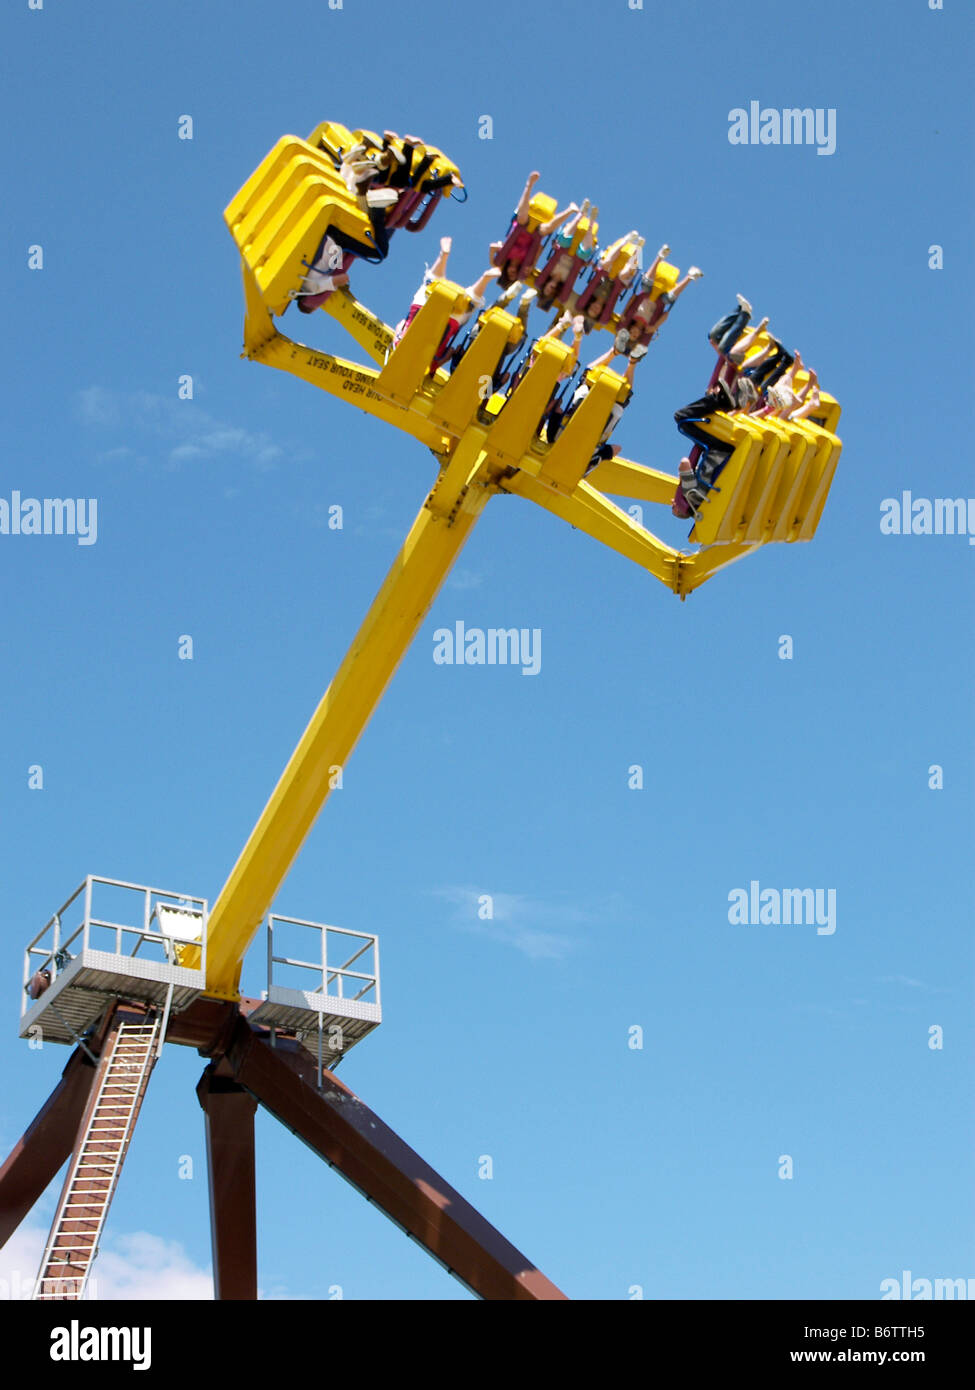 funfair ride fun fair amusement park thrill ride adrenaline rush scary scared silly stupid excitement - Stock Image